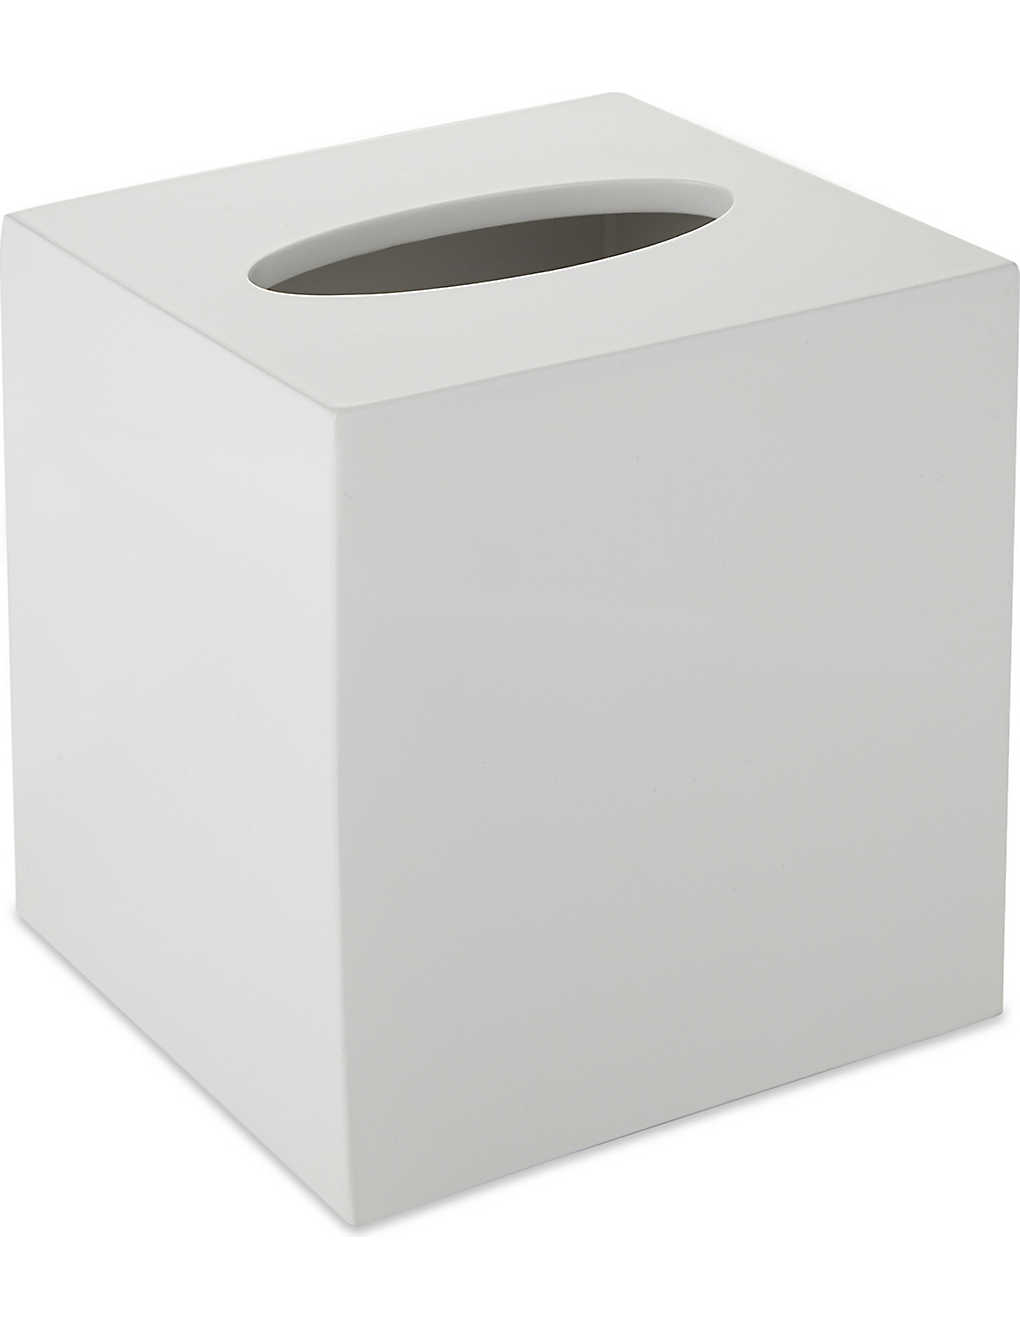 THE WHITE COMPANY - Lacquer tissue box cover 15cm | Selfridges.com